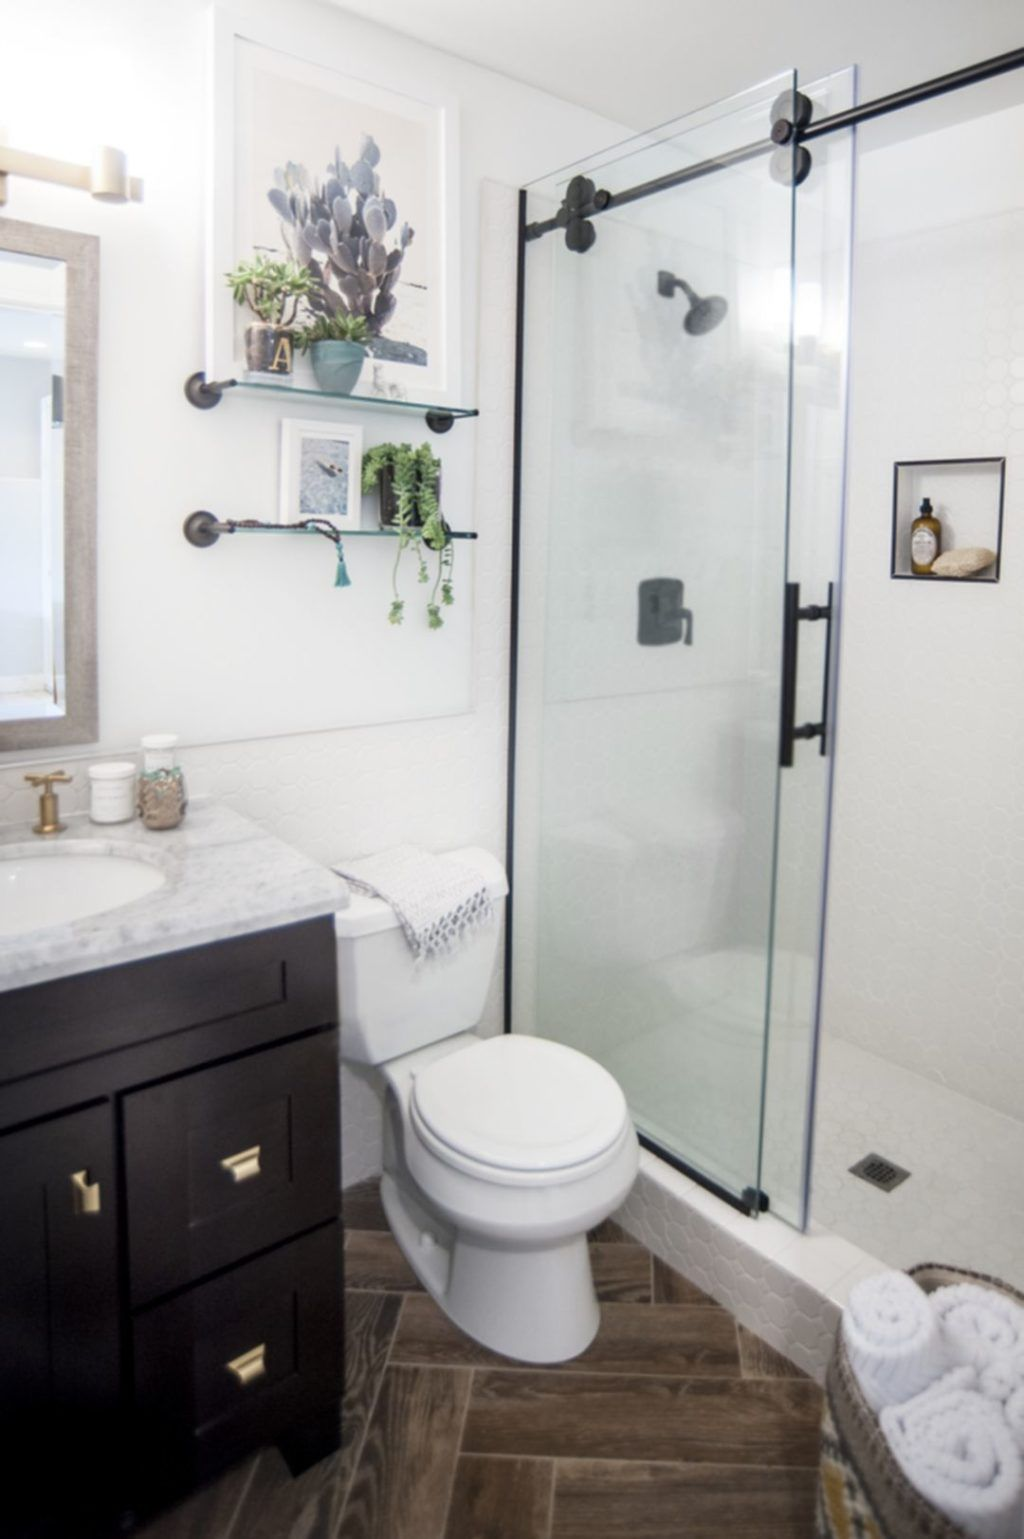 30 cool bathroom shower design ideas in 2020 with images